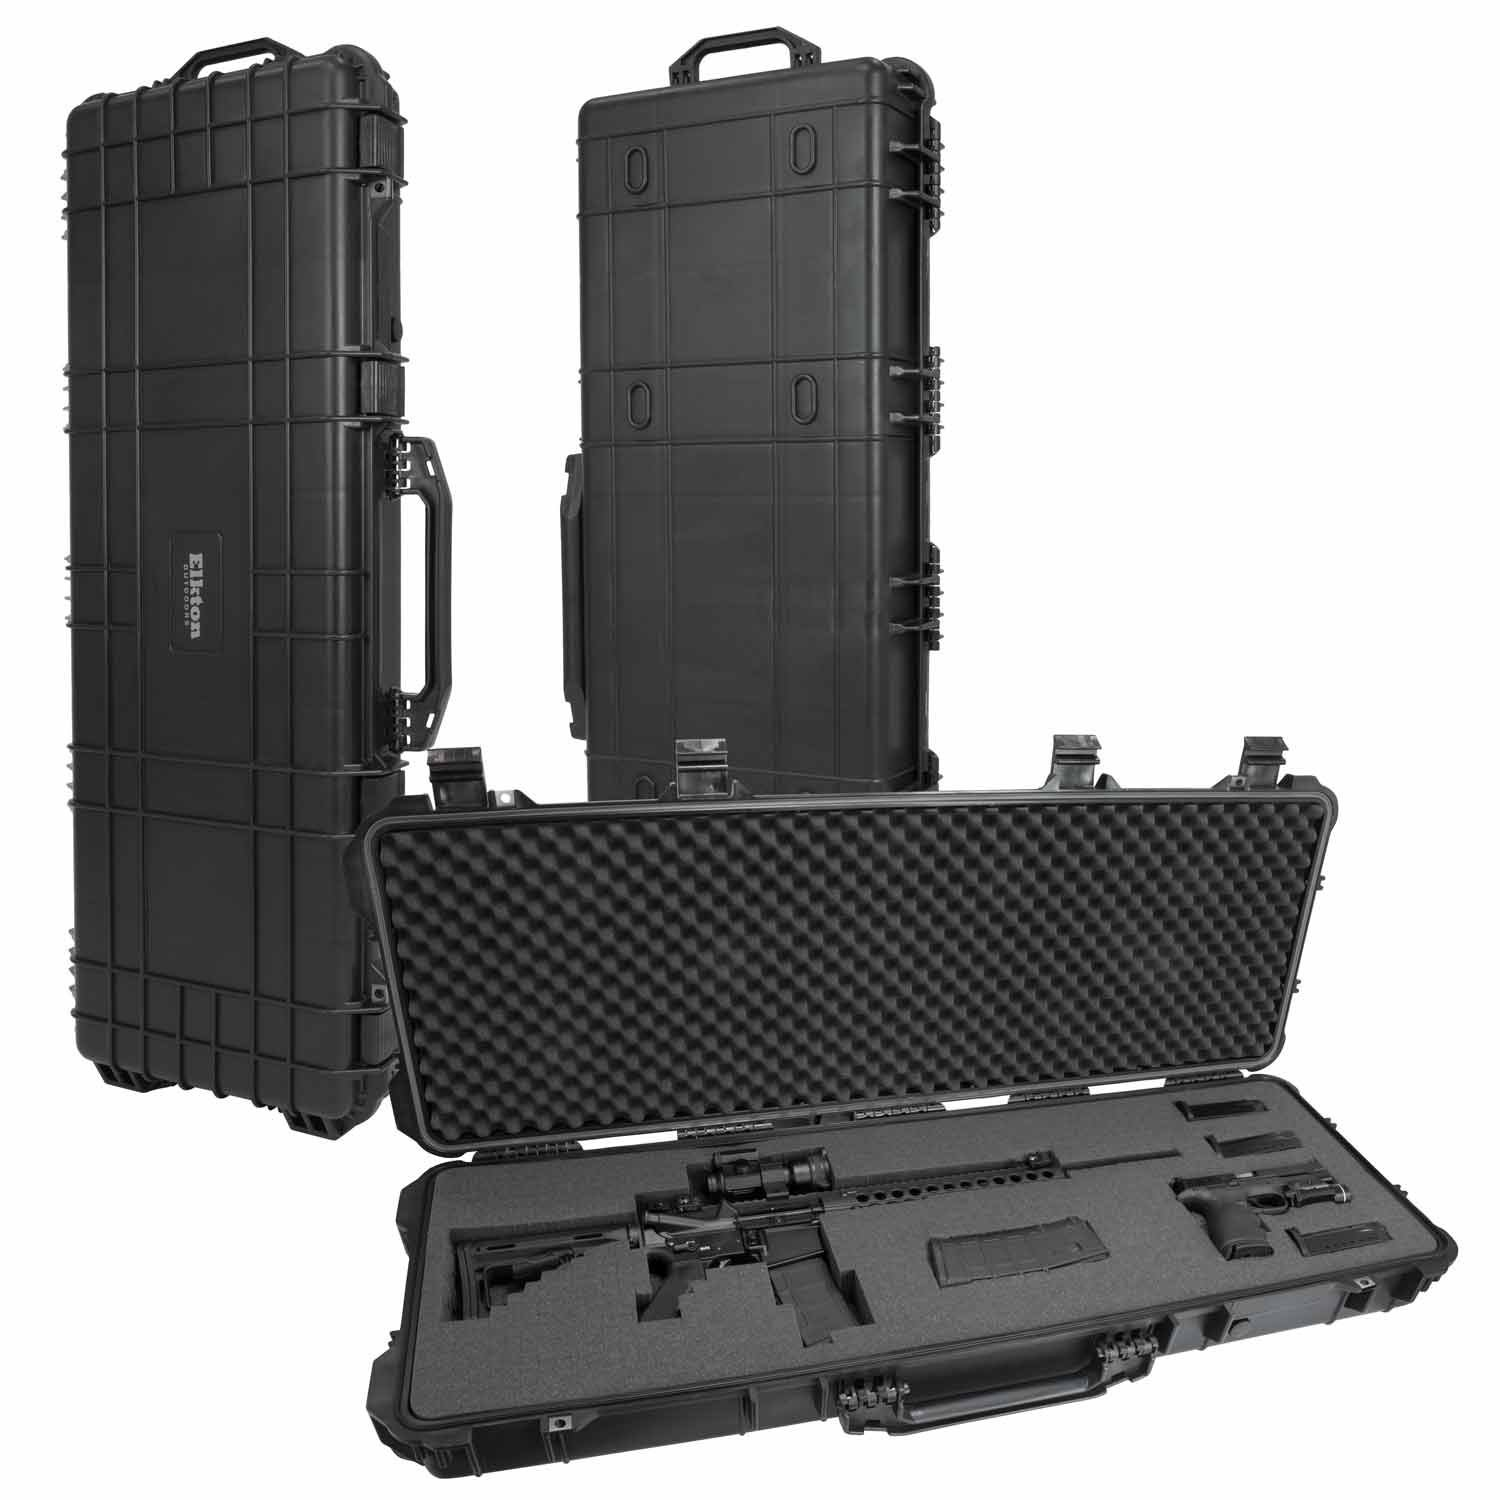 Heavy Duty Waterproof Hard <strong>Plastic</strong> <strong>Case</strong> Military Shockproof Long Gun Weapon <strong>Case</strong>